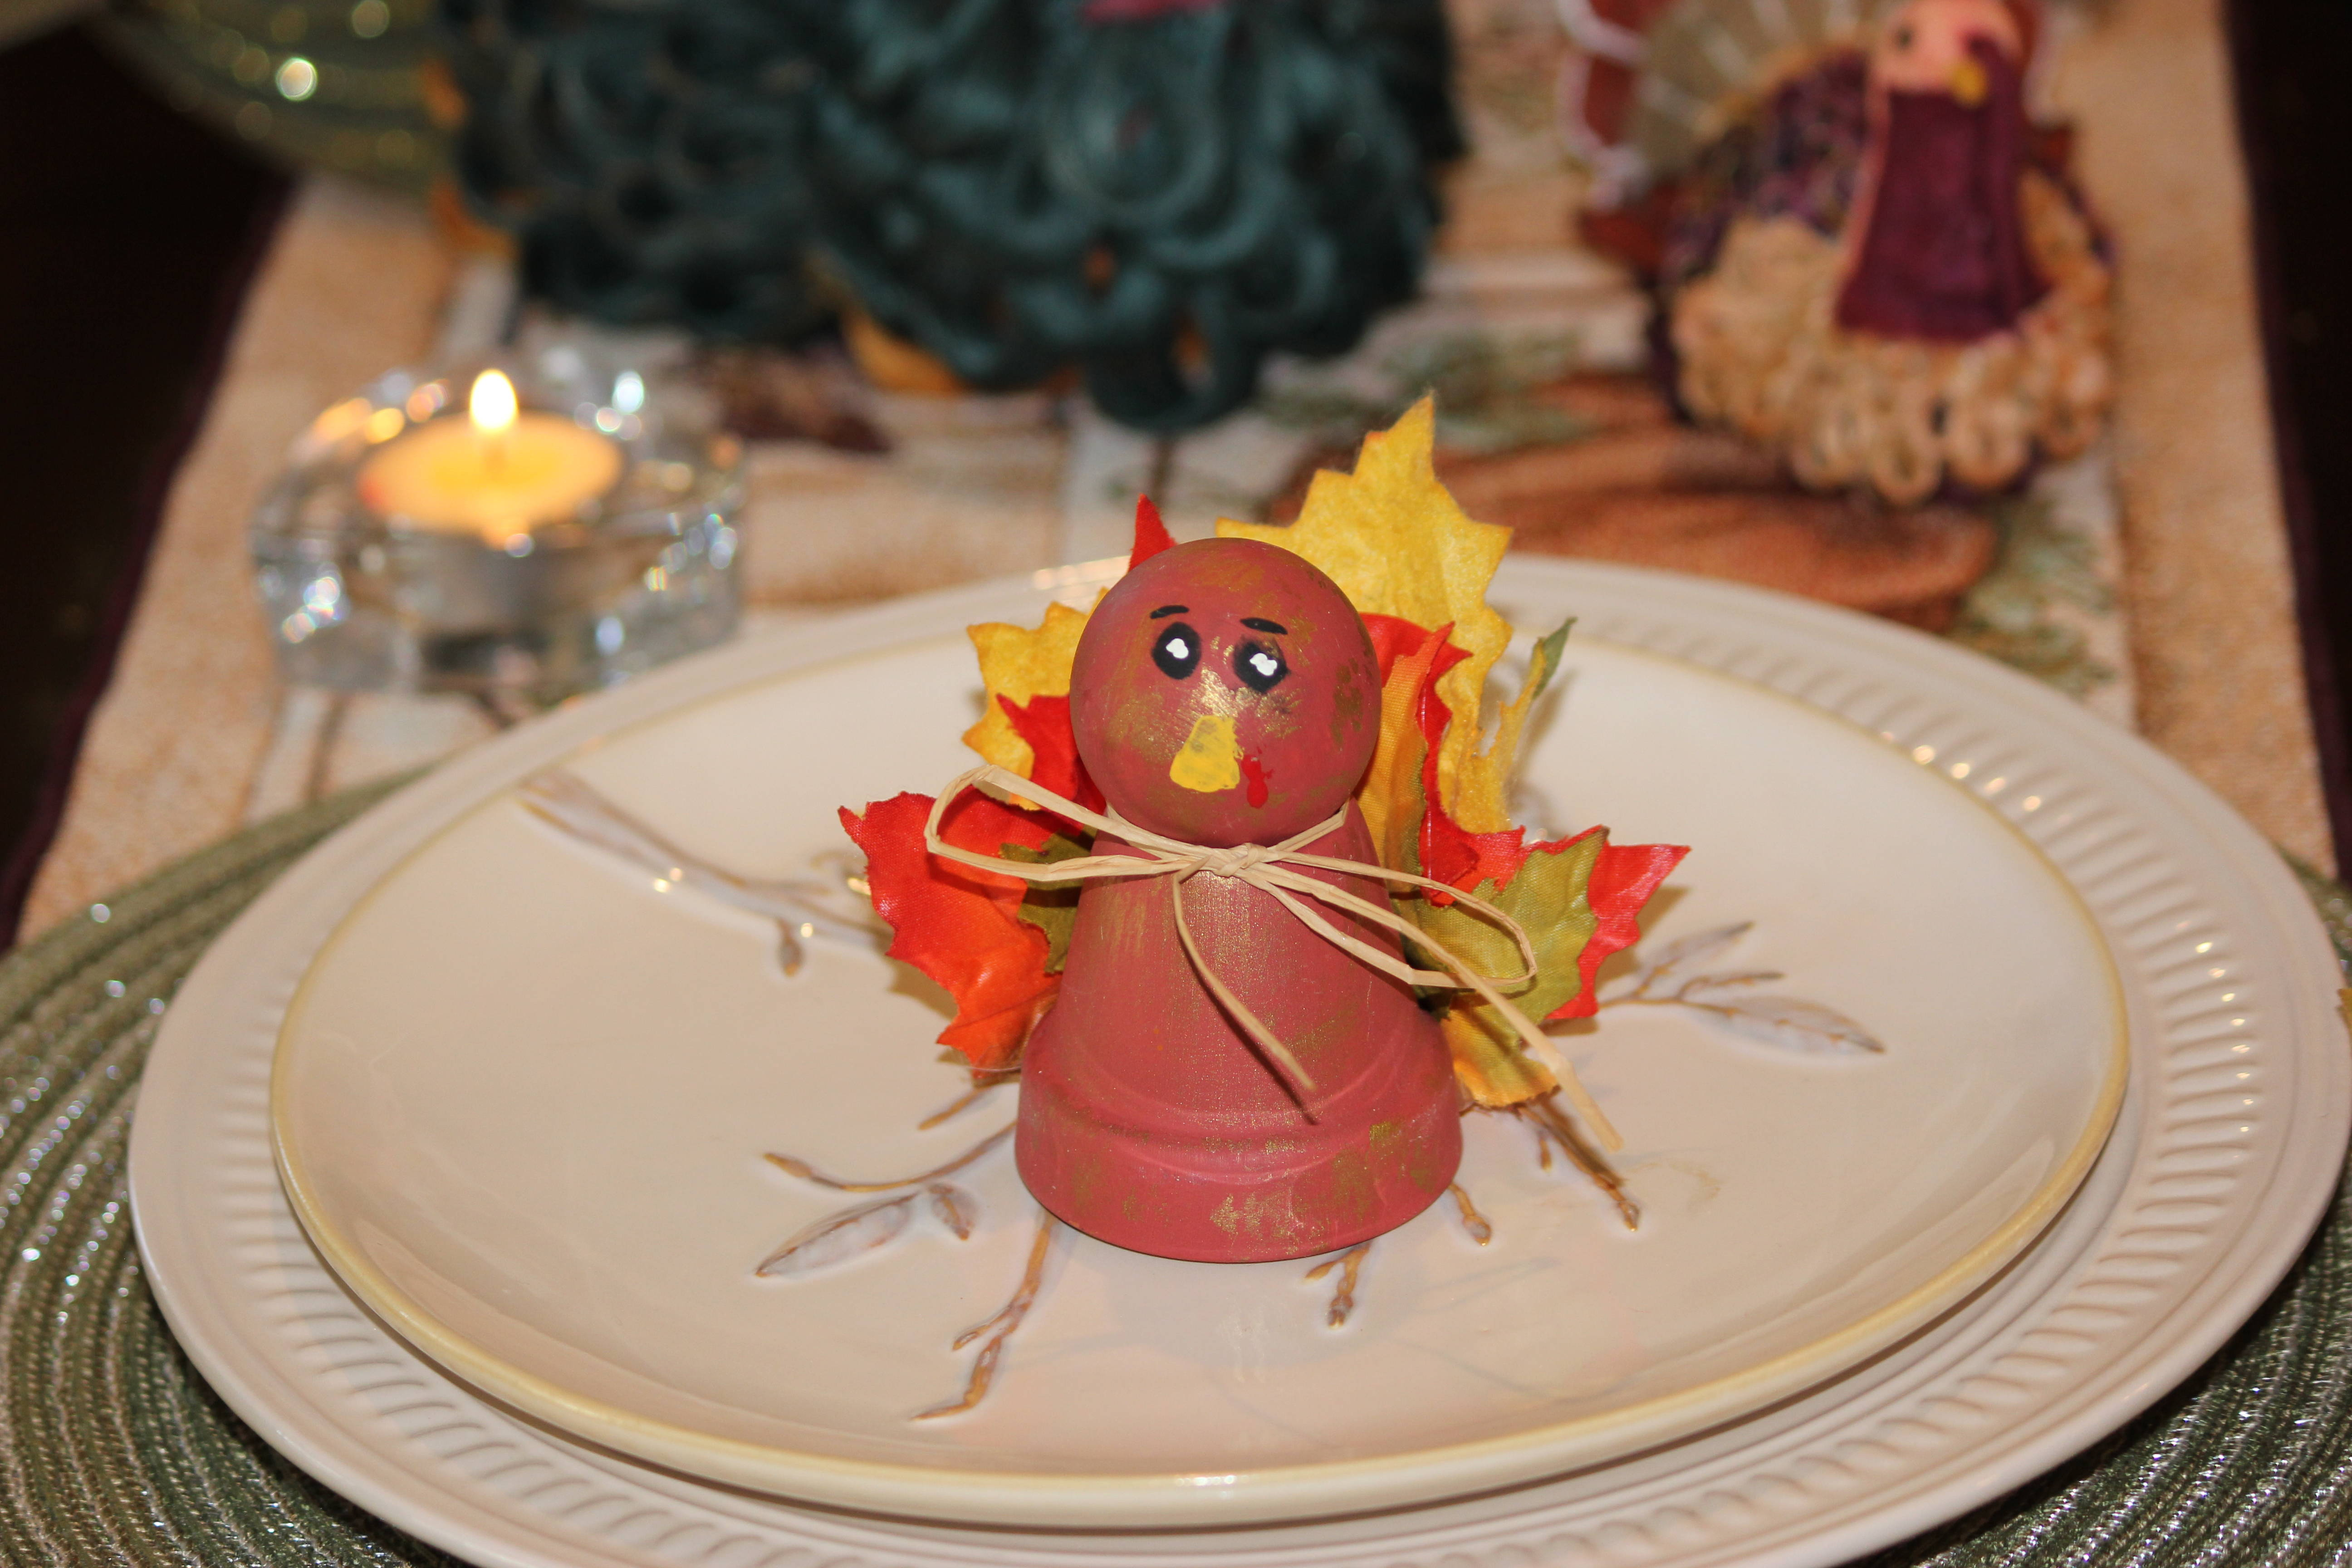 Make turkey table decorations with your kids